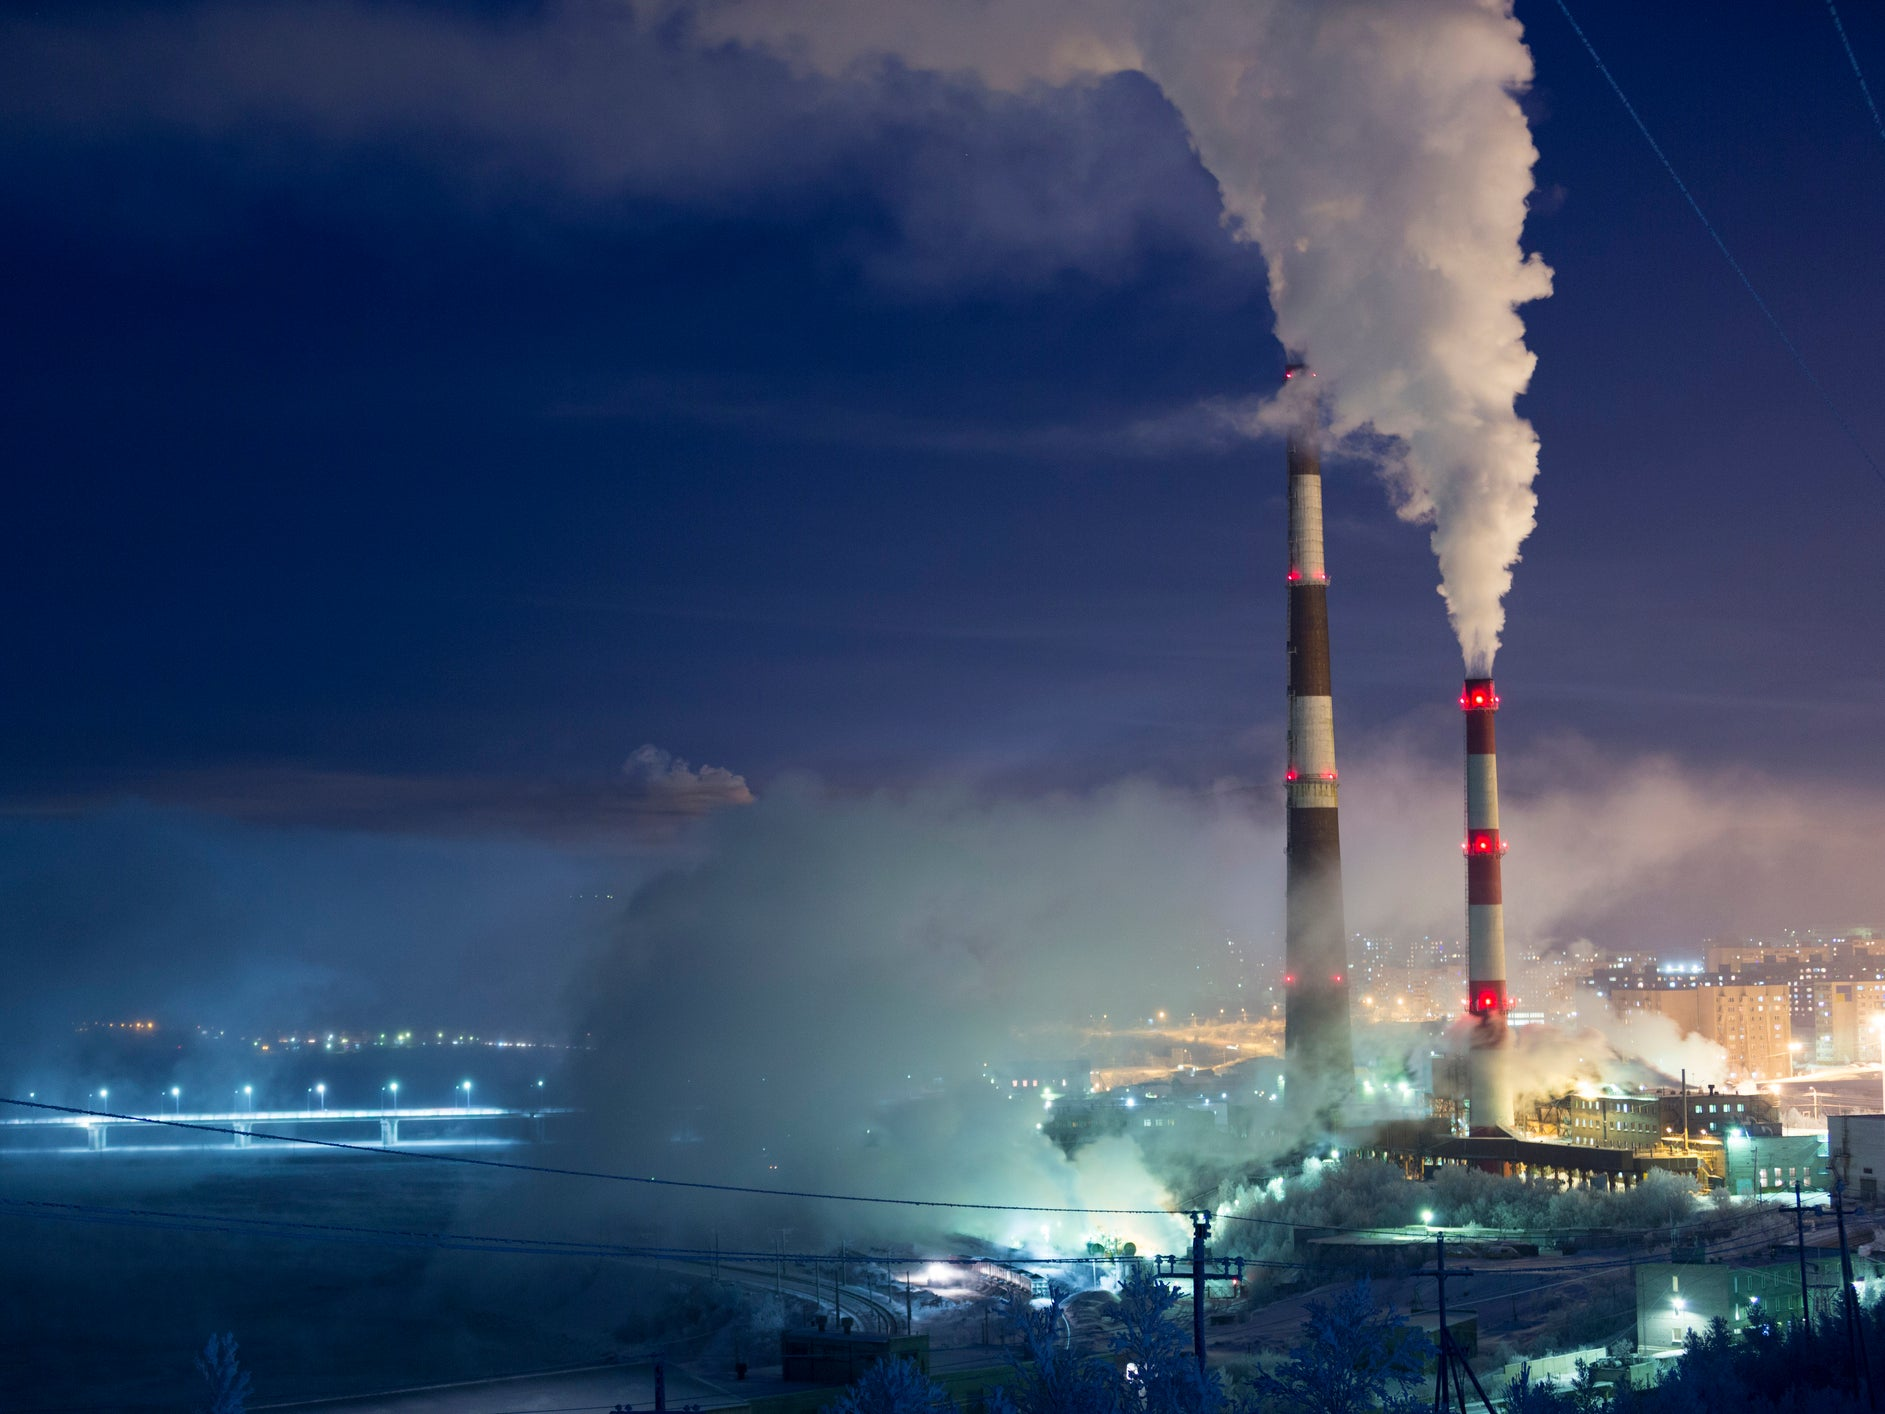 Polluting firms likely to lose almost half of their value due to cli…